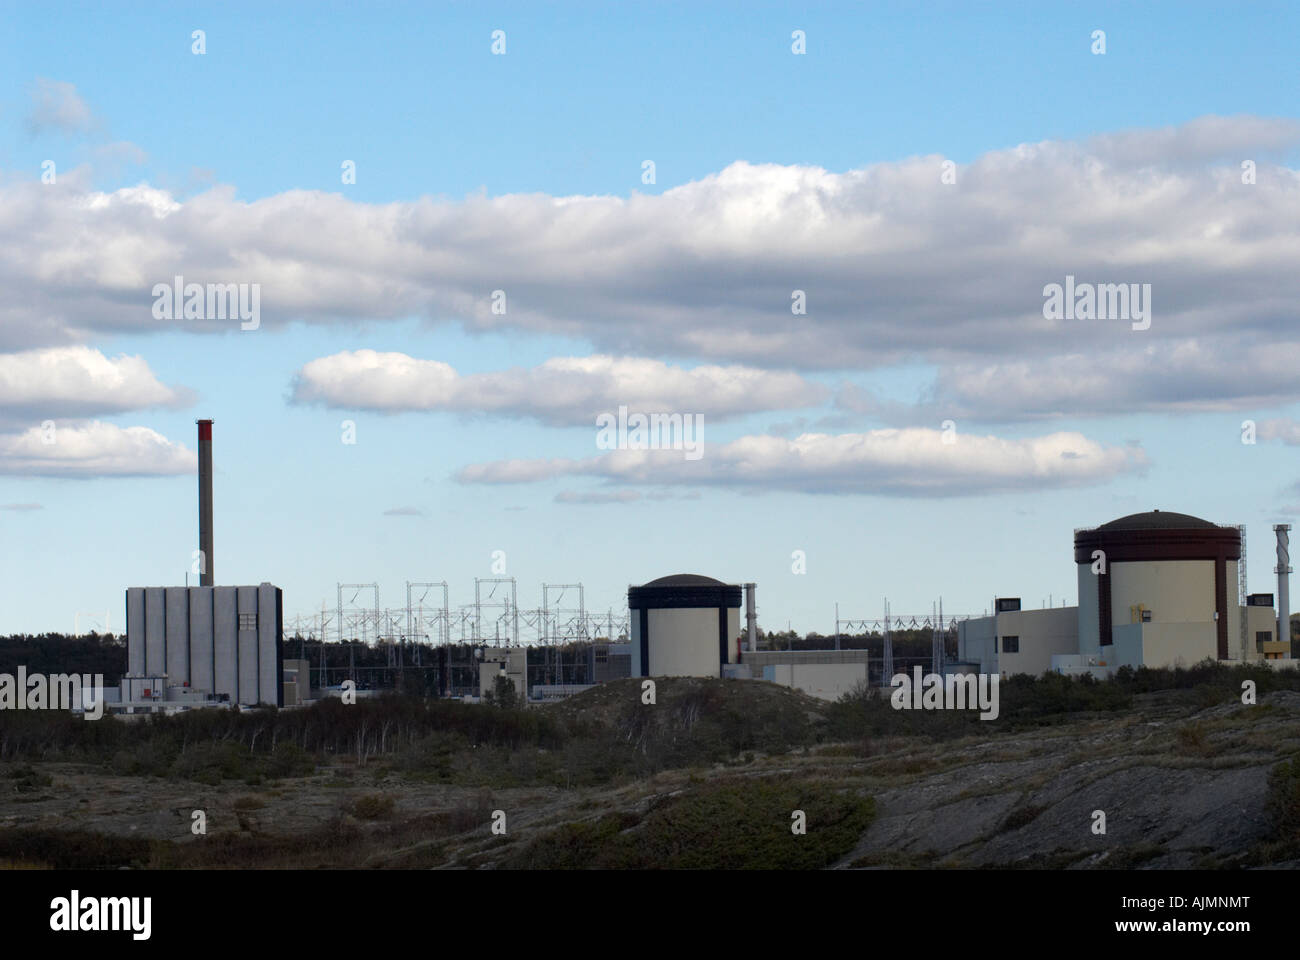 Ringhals the Swedish Nuclear Power Plant - Stock Image